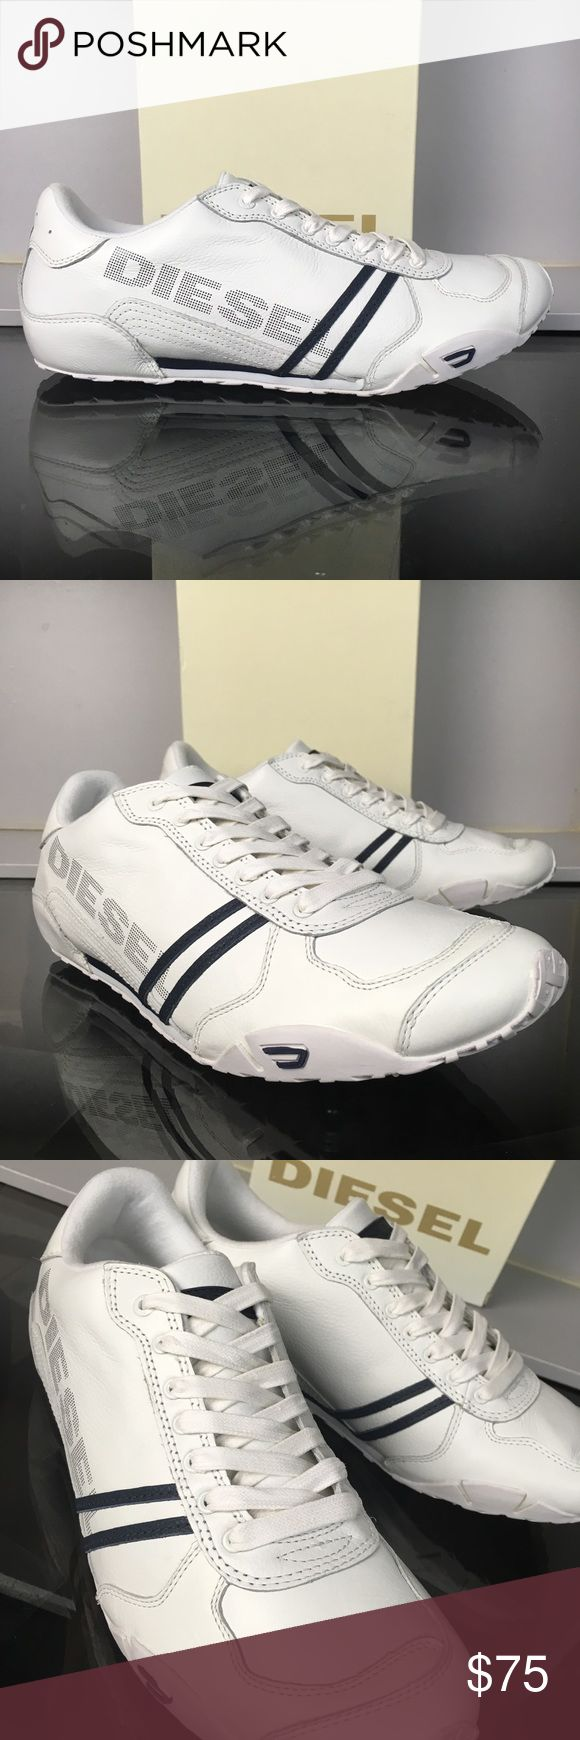 Diesel White Navy Harold Solar Brand new and with the original box Diesel Shoes Sneakers